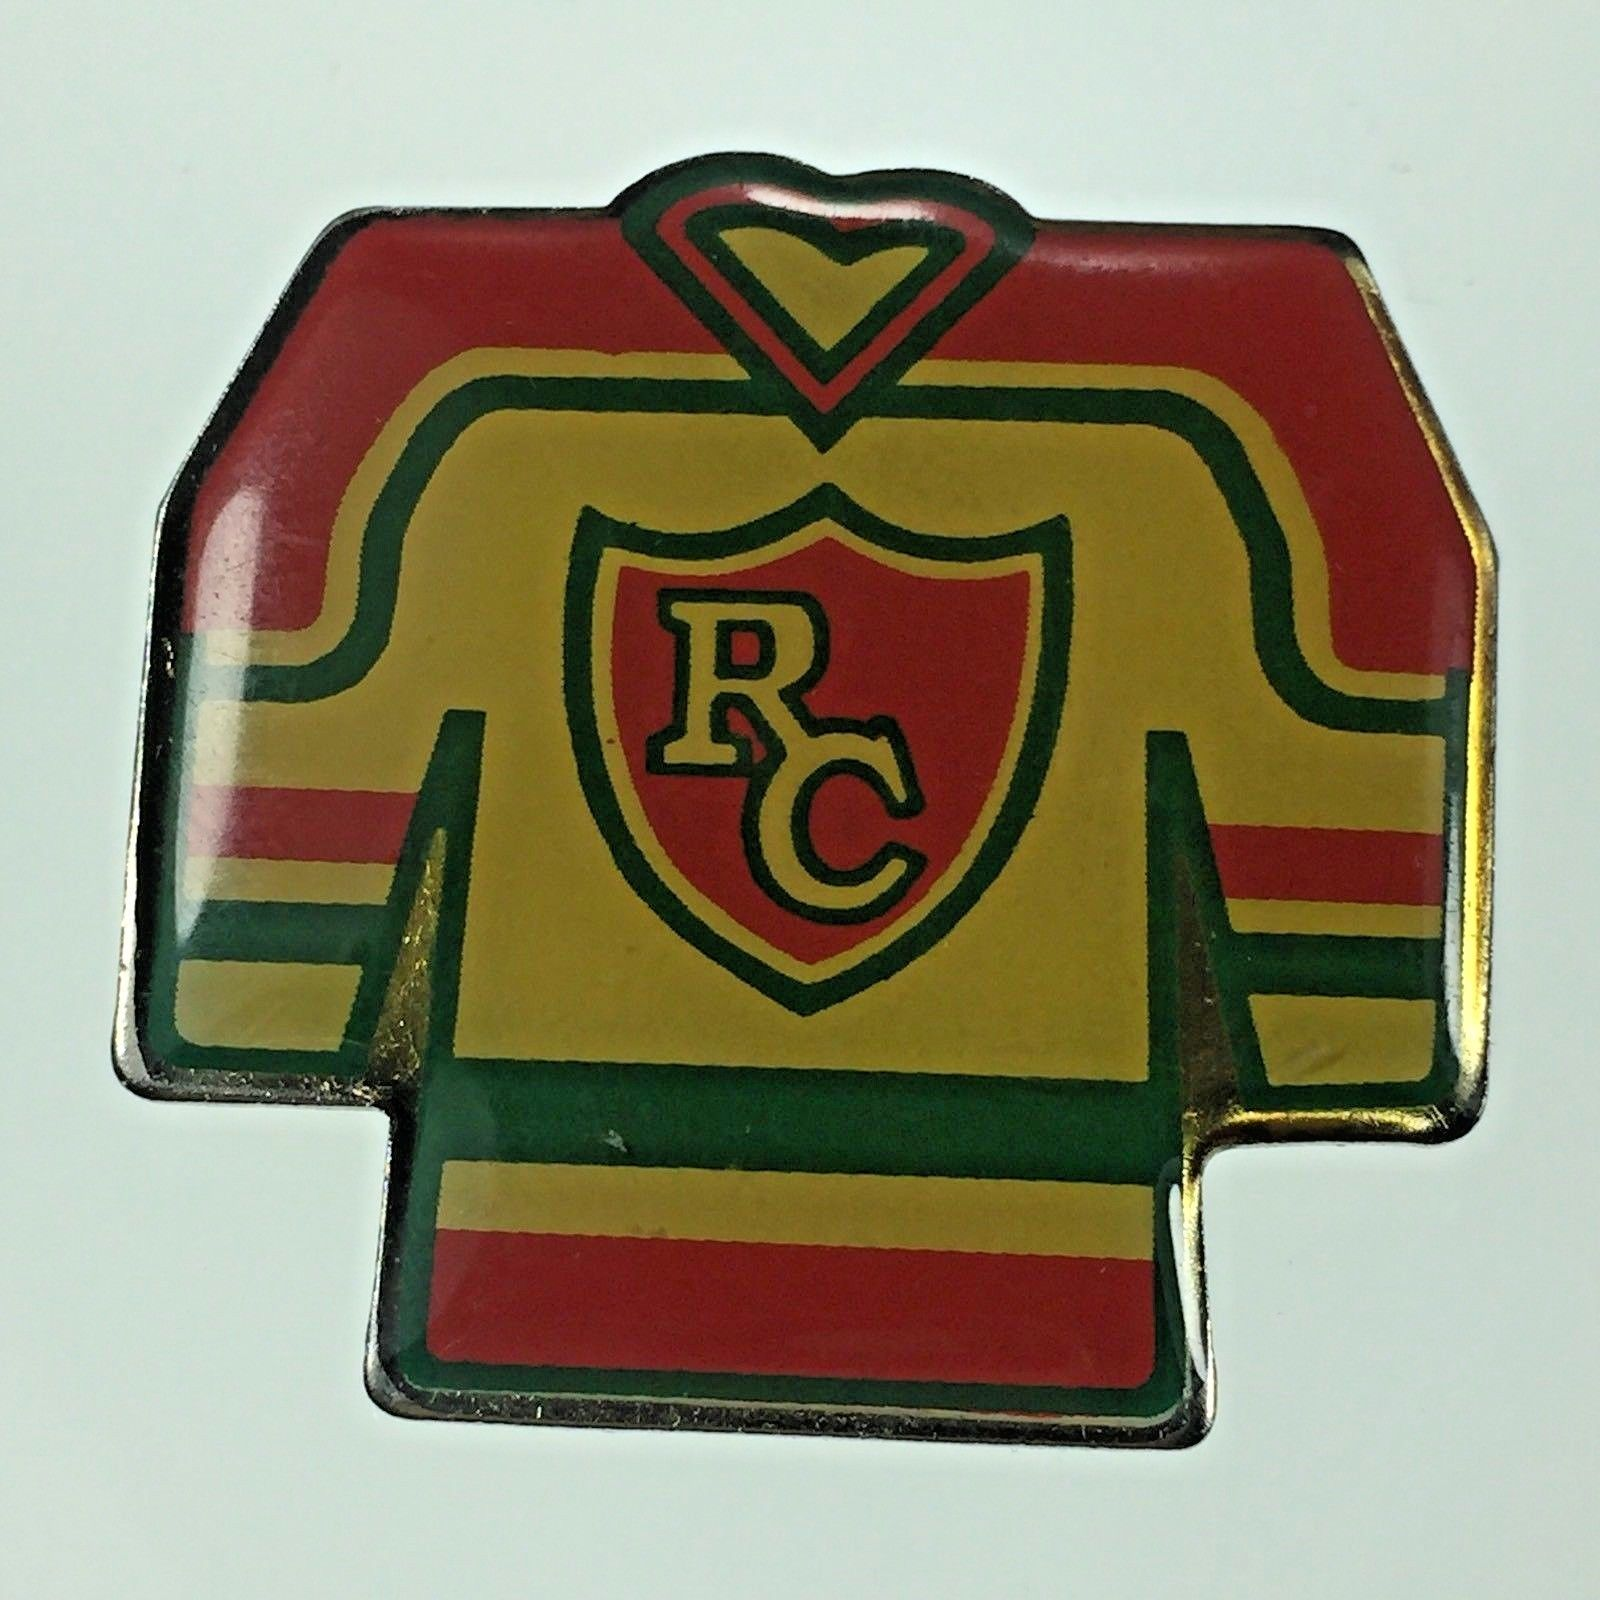 Primary image for Vintage Hockey RC Rochester College Team Hockey Uniform Jersey Lapel Pin